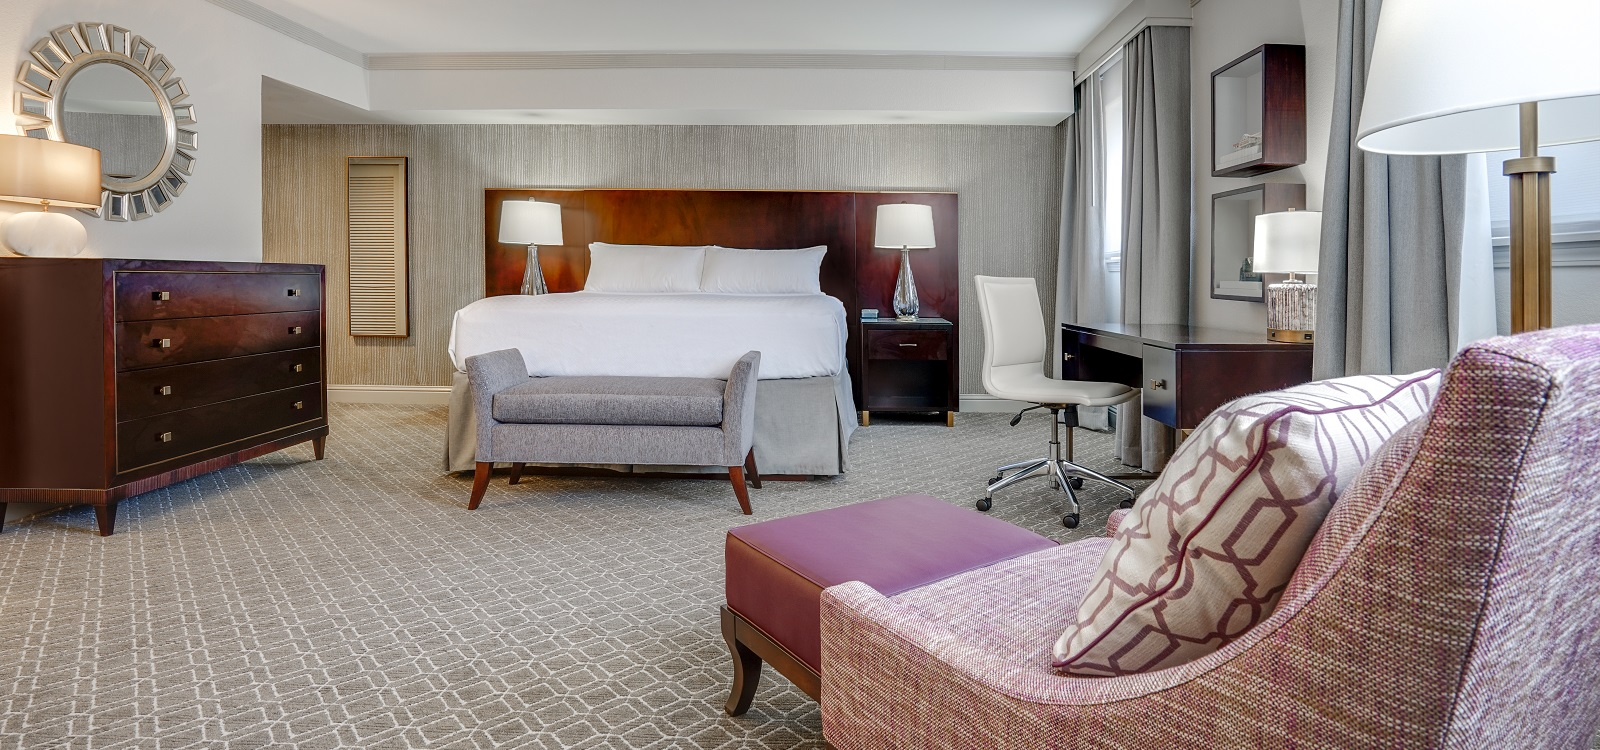 Rooms at Astor Crowne Plaza - New Orleans French Quarter